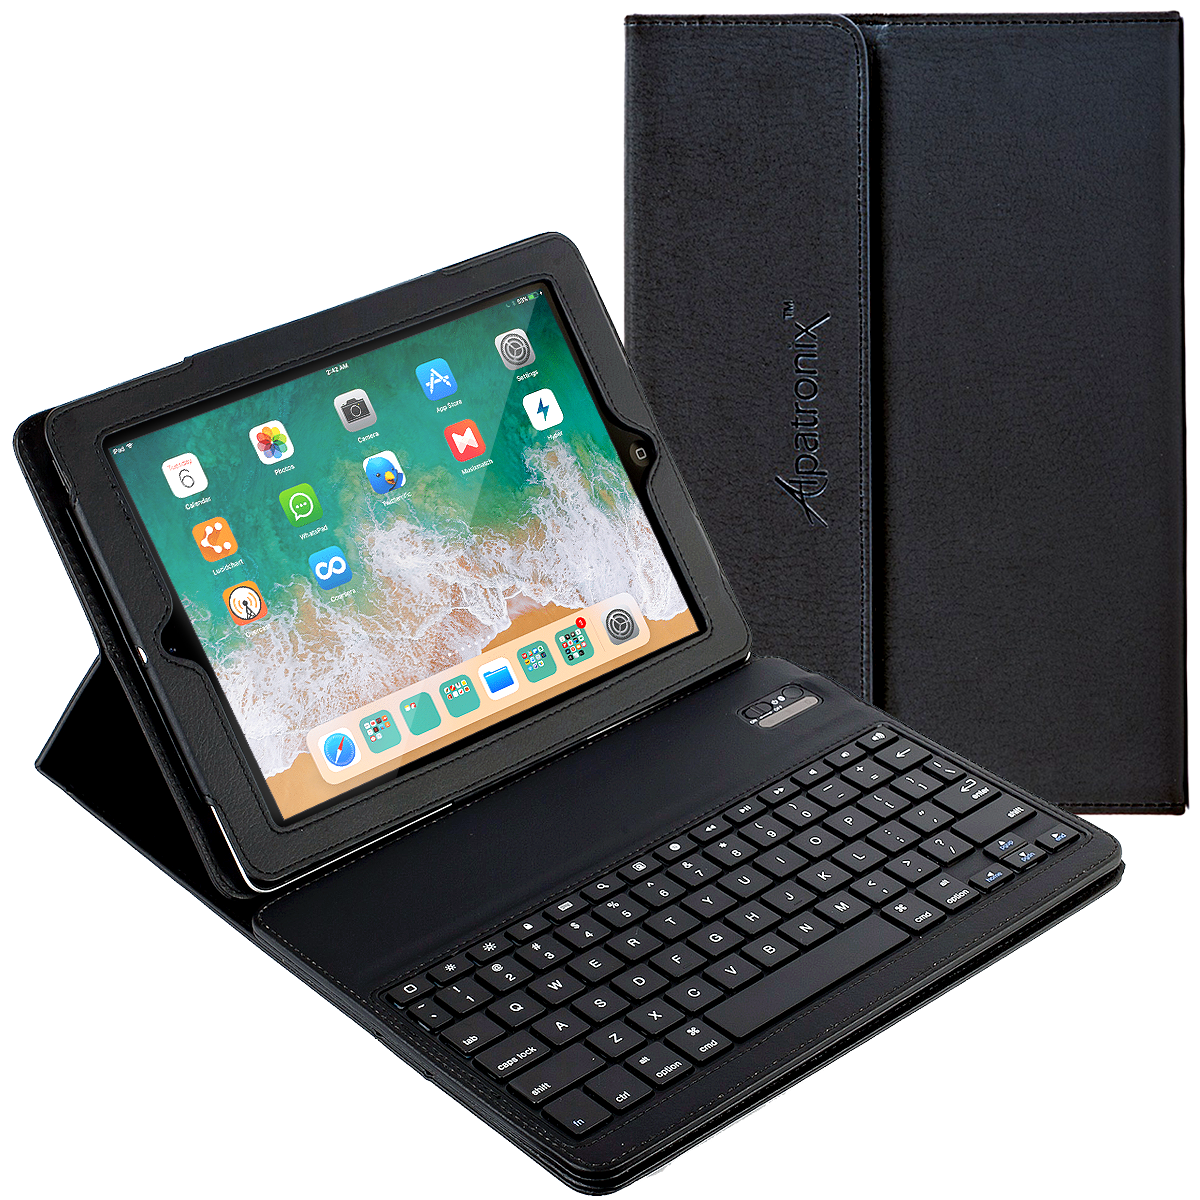 """iPad Pro 10.5 Keyboard + Leather Case, Alpatronix KX150 10.5"""" Bluetooth iPad Keyboard Folio Smart Case w/Removable Wireless Keyboard Cover & Built-in Tablet Stand for 2017 iPad Pro 10.5-inch"""